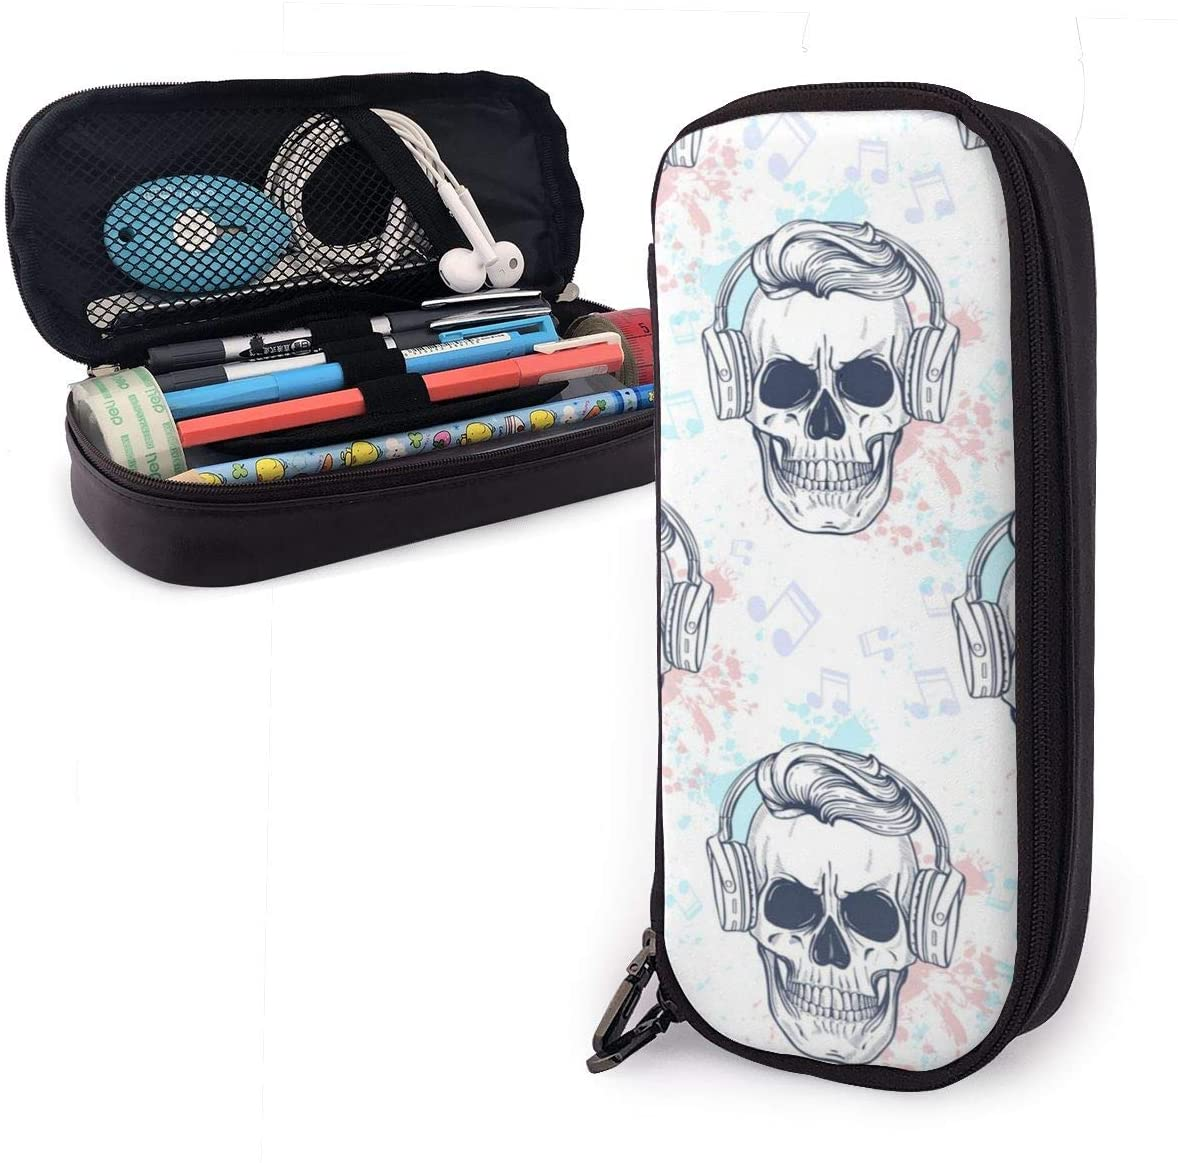 Pencil Case High Capacity Skull Pens Pencil Case with Zipper for School & Office Supplies Pencil Pouch Bag School Stationery Compact Cosmetic Bag